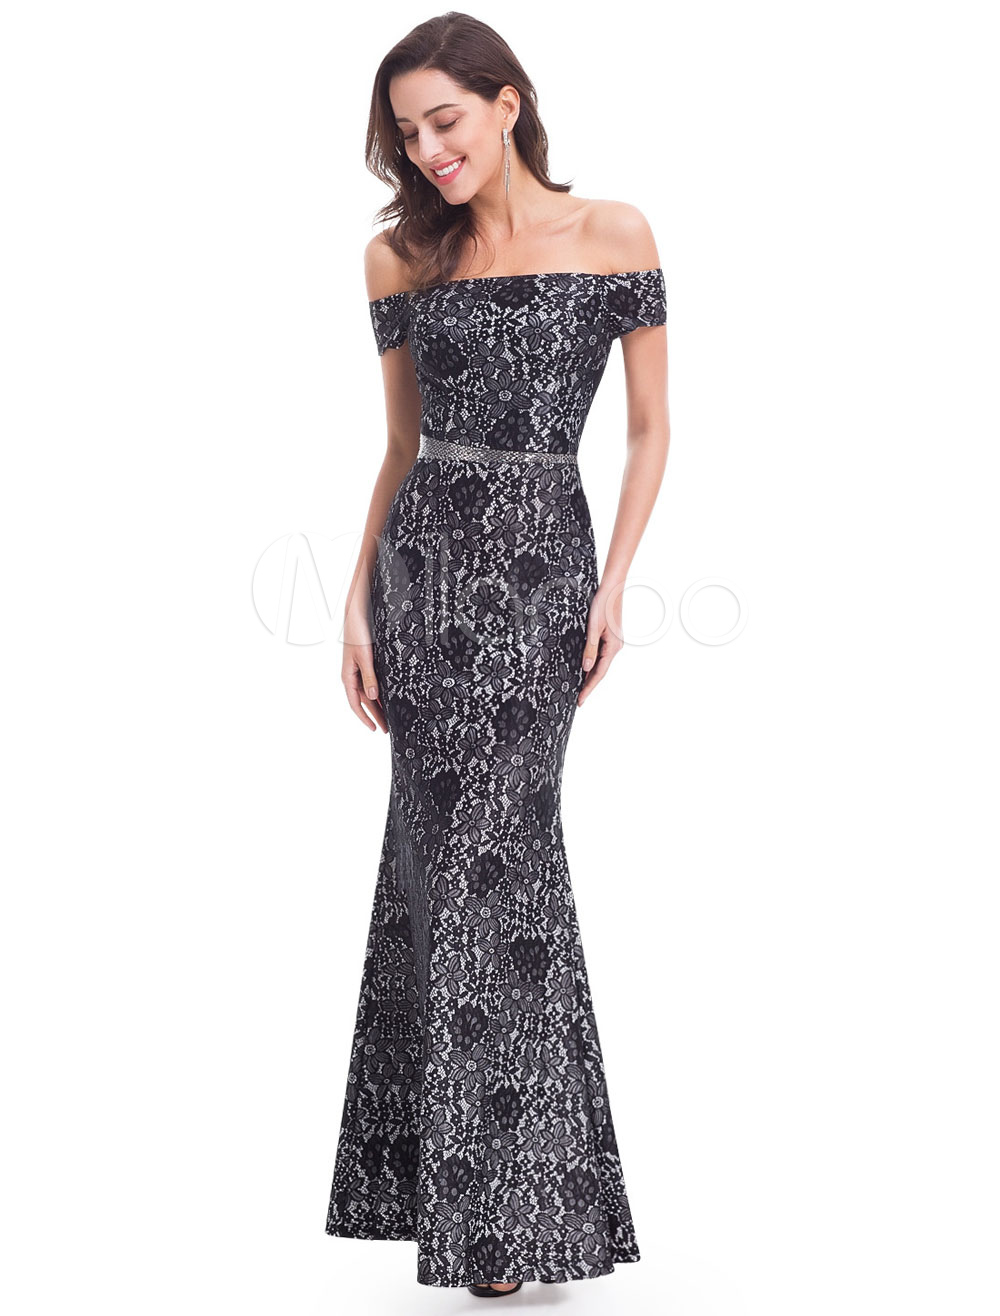 Buy Lace Evening Dresses Black Off The Shoulder Mermaid Beading Sash Floor Length Formal Dresses for $114.39 in Milanoo store